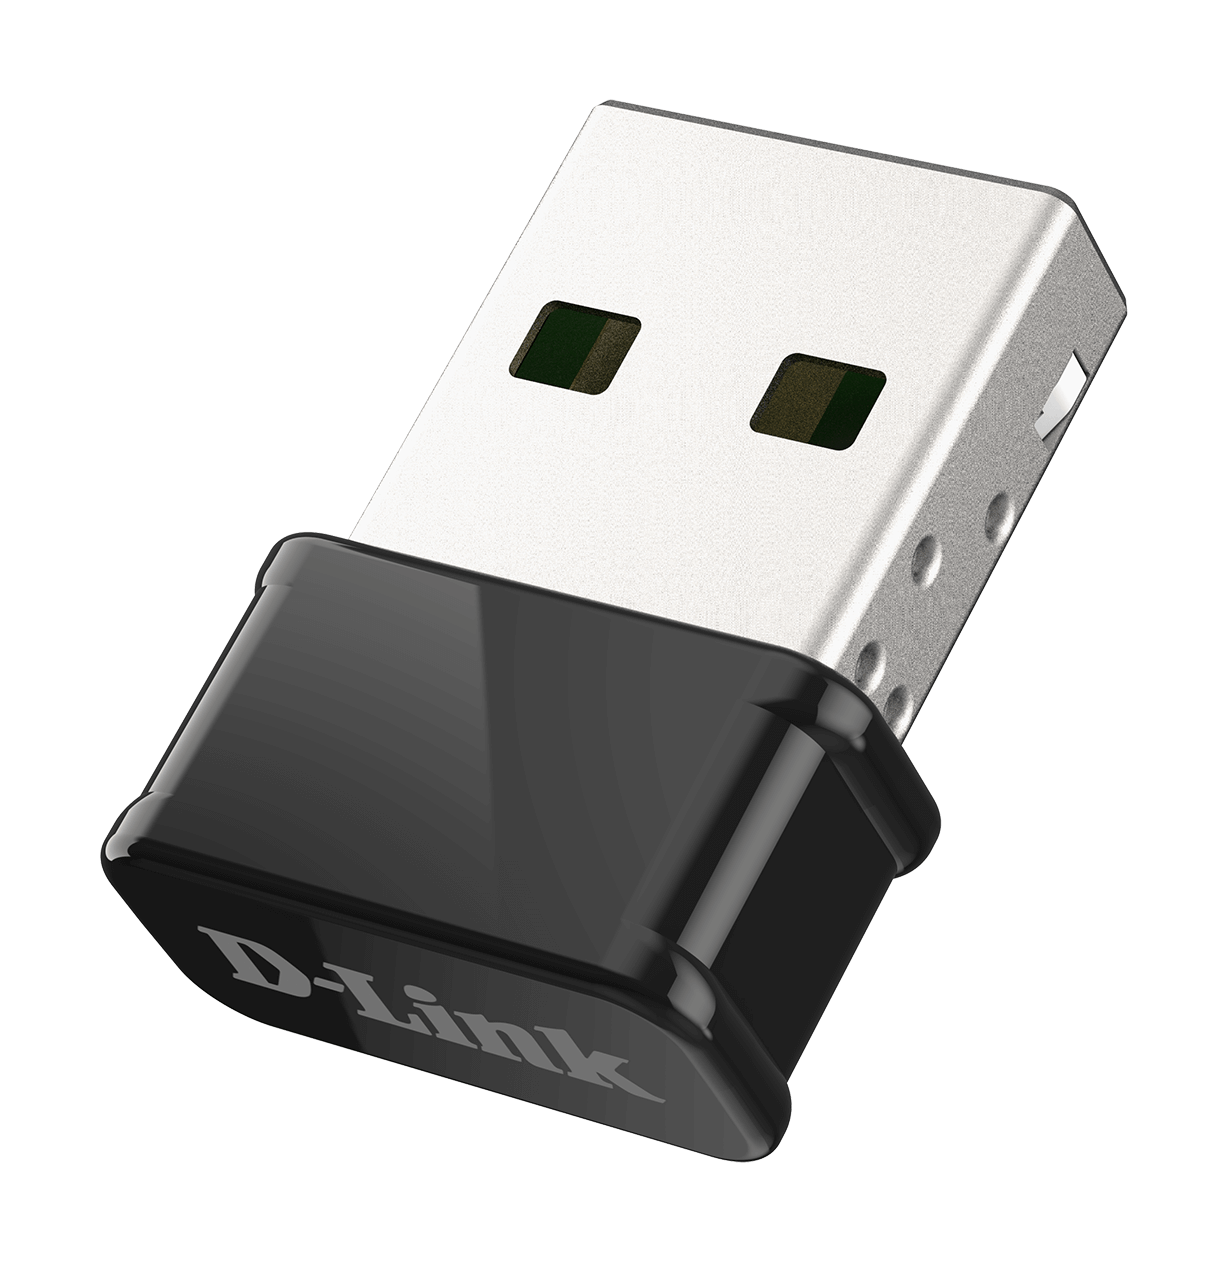 DWA-181 AC1300 MU-MIMO Wi-Fi Nano USB Adapter - side left